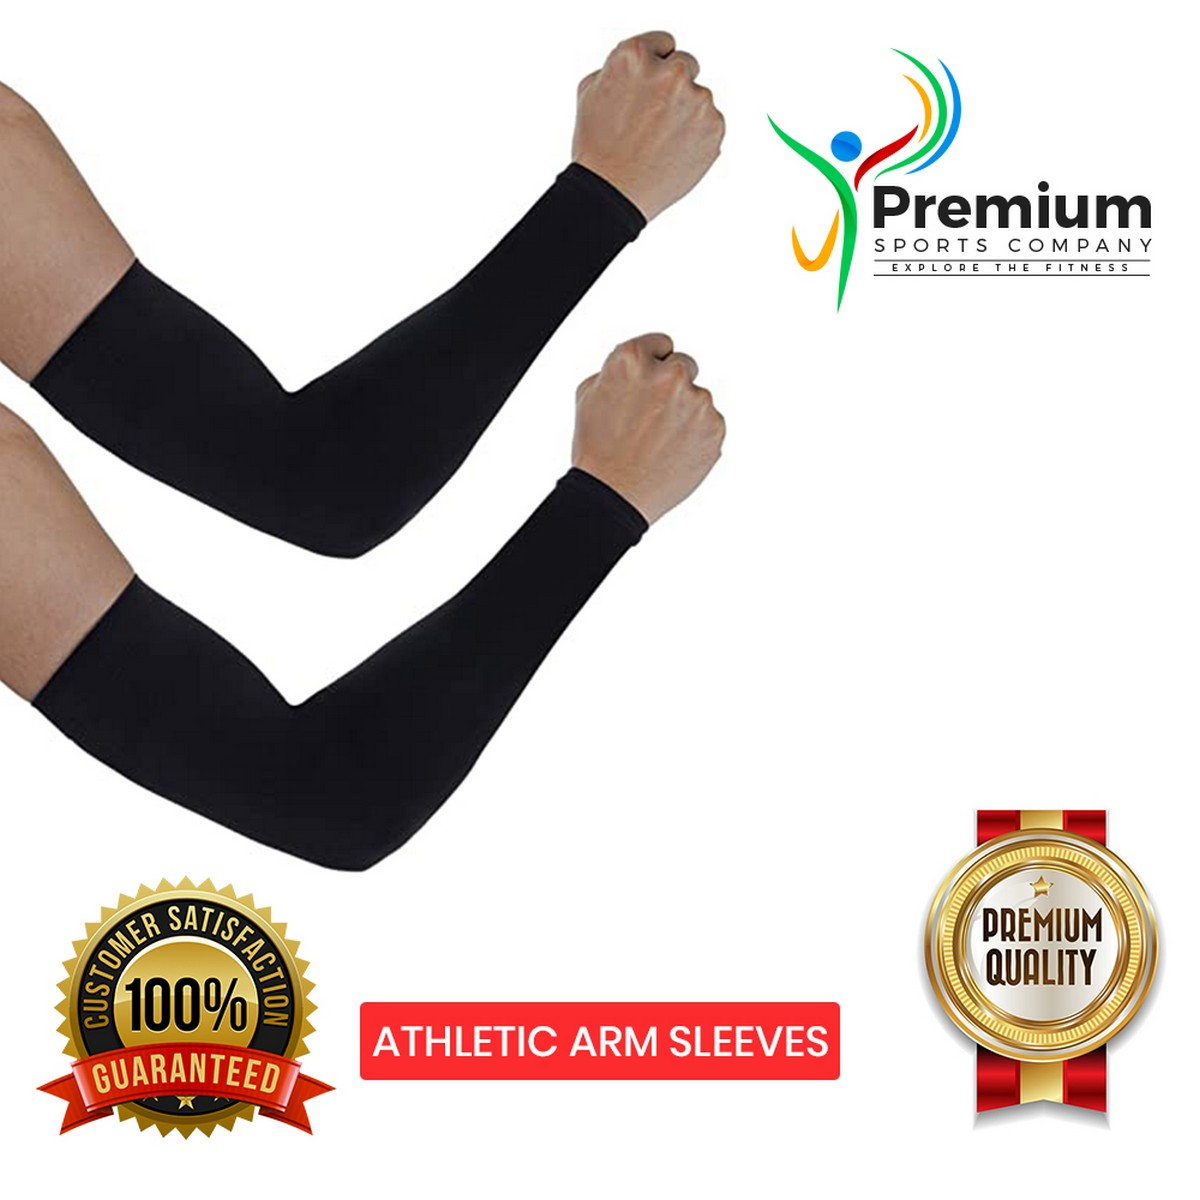 PREMIUM SPORTS Pair of Athletic Arm Sleeves | Performance Arm Muffs | Cooling, Absorbs Sweat, Cover Sunlight, Protects Against Germ and Dirt Cover Suitable For Hiking, Running, Sports - (Unisex, 15 Inch) - Black